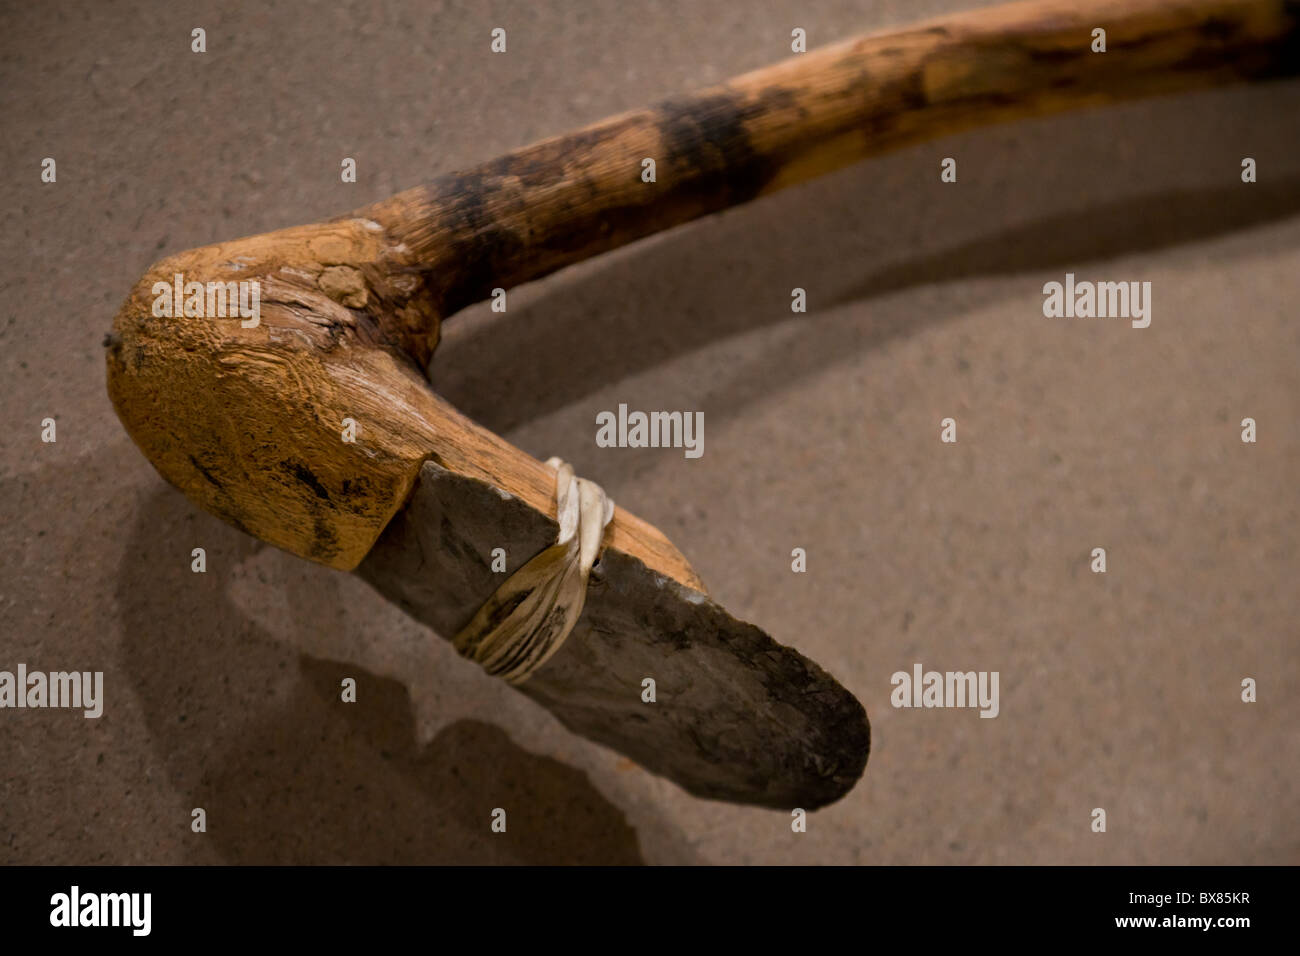 Mississippian period stone hoe formed from a chert blade strapped to a handle at Cahokia Mounds, Illinois, USA. - Stock Image